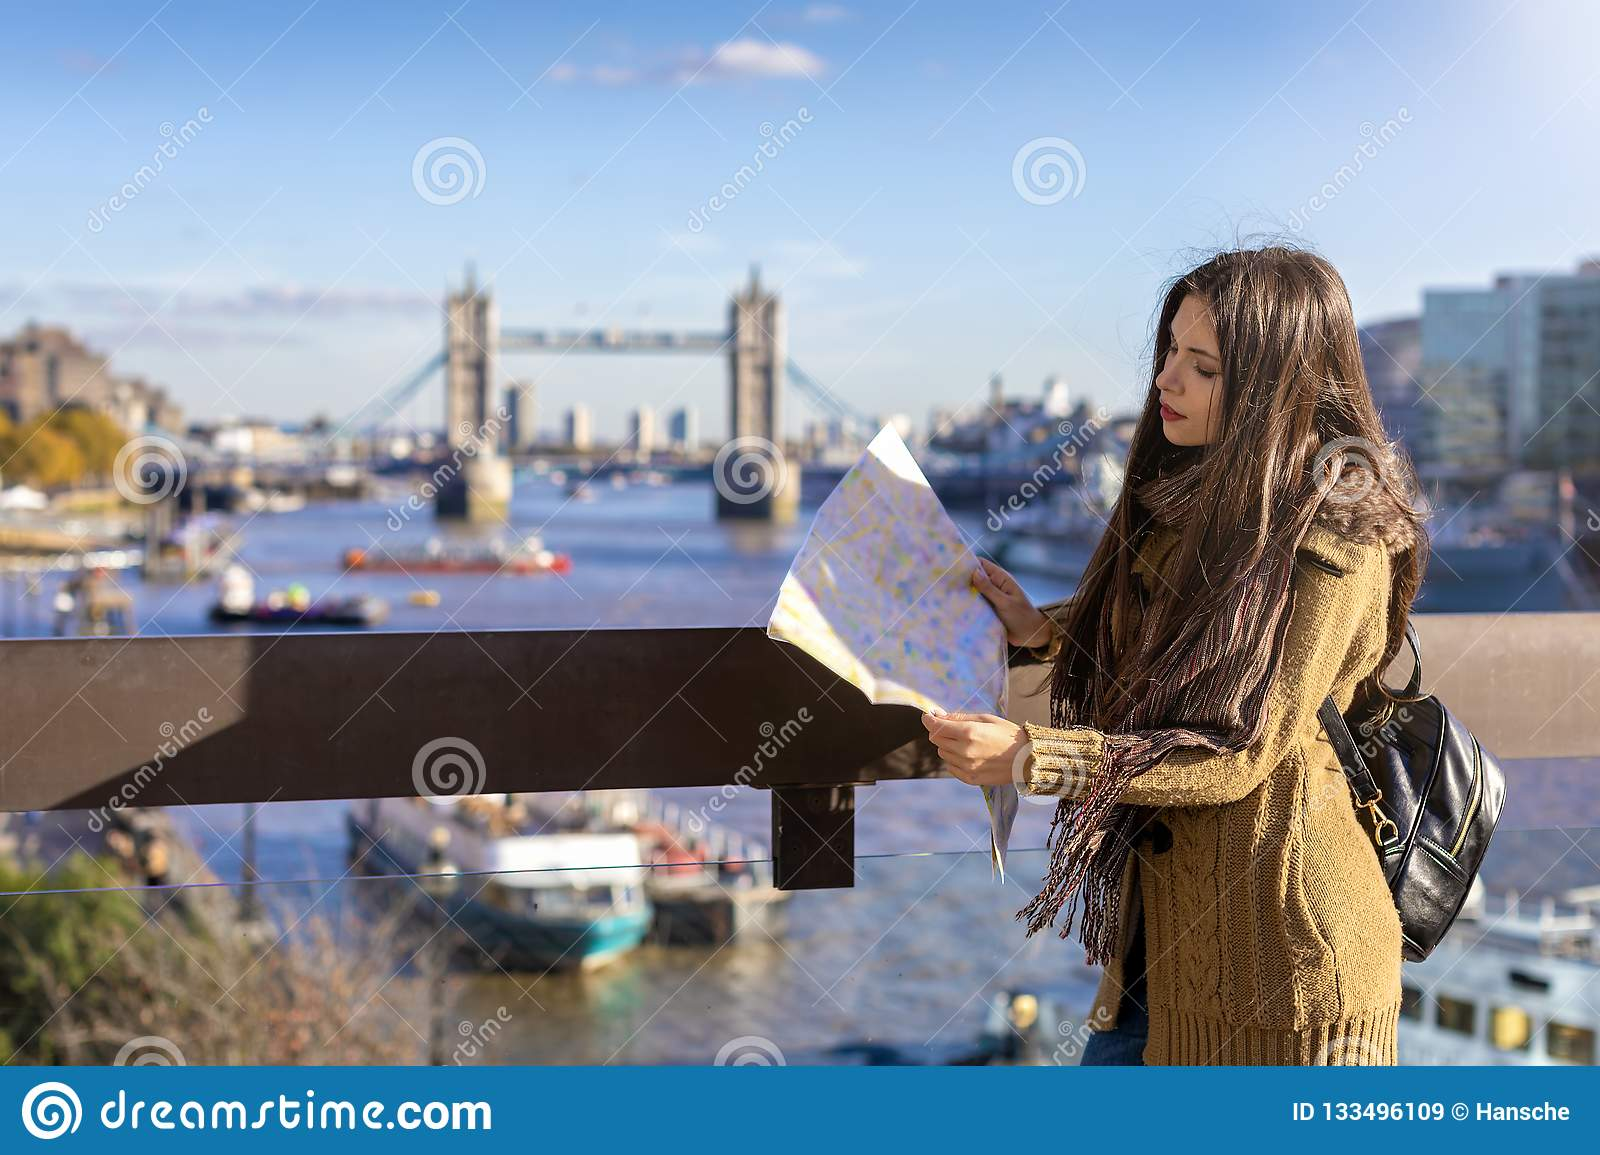 Female traveler looks at the street map in front of the Tower Bridge in London, UK